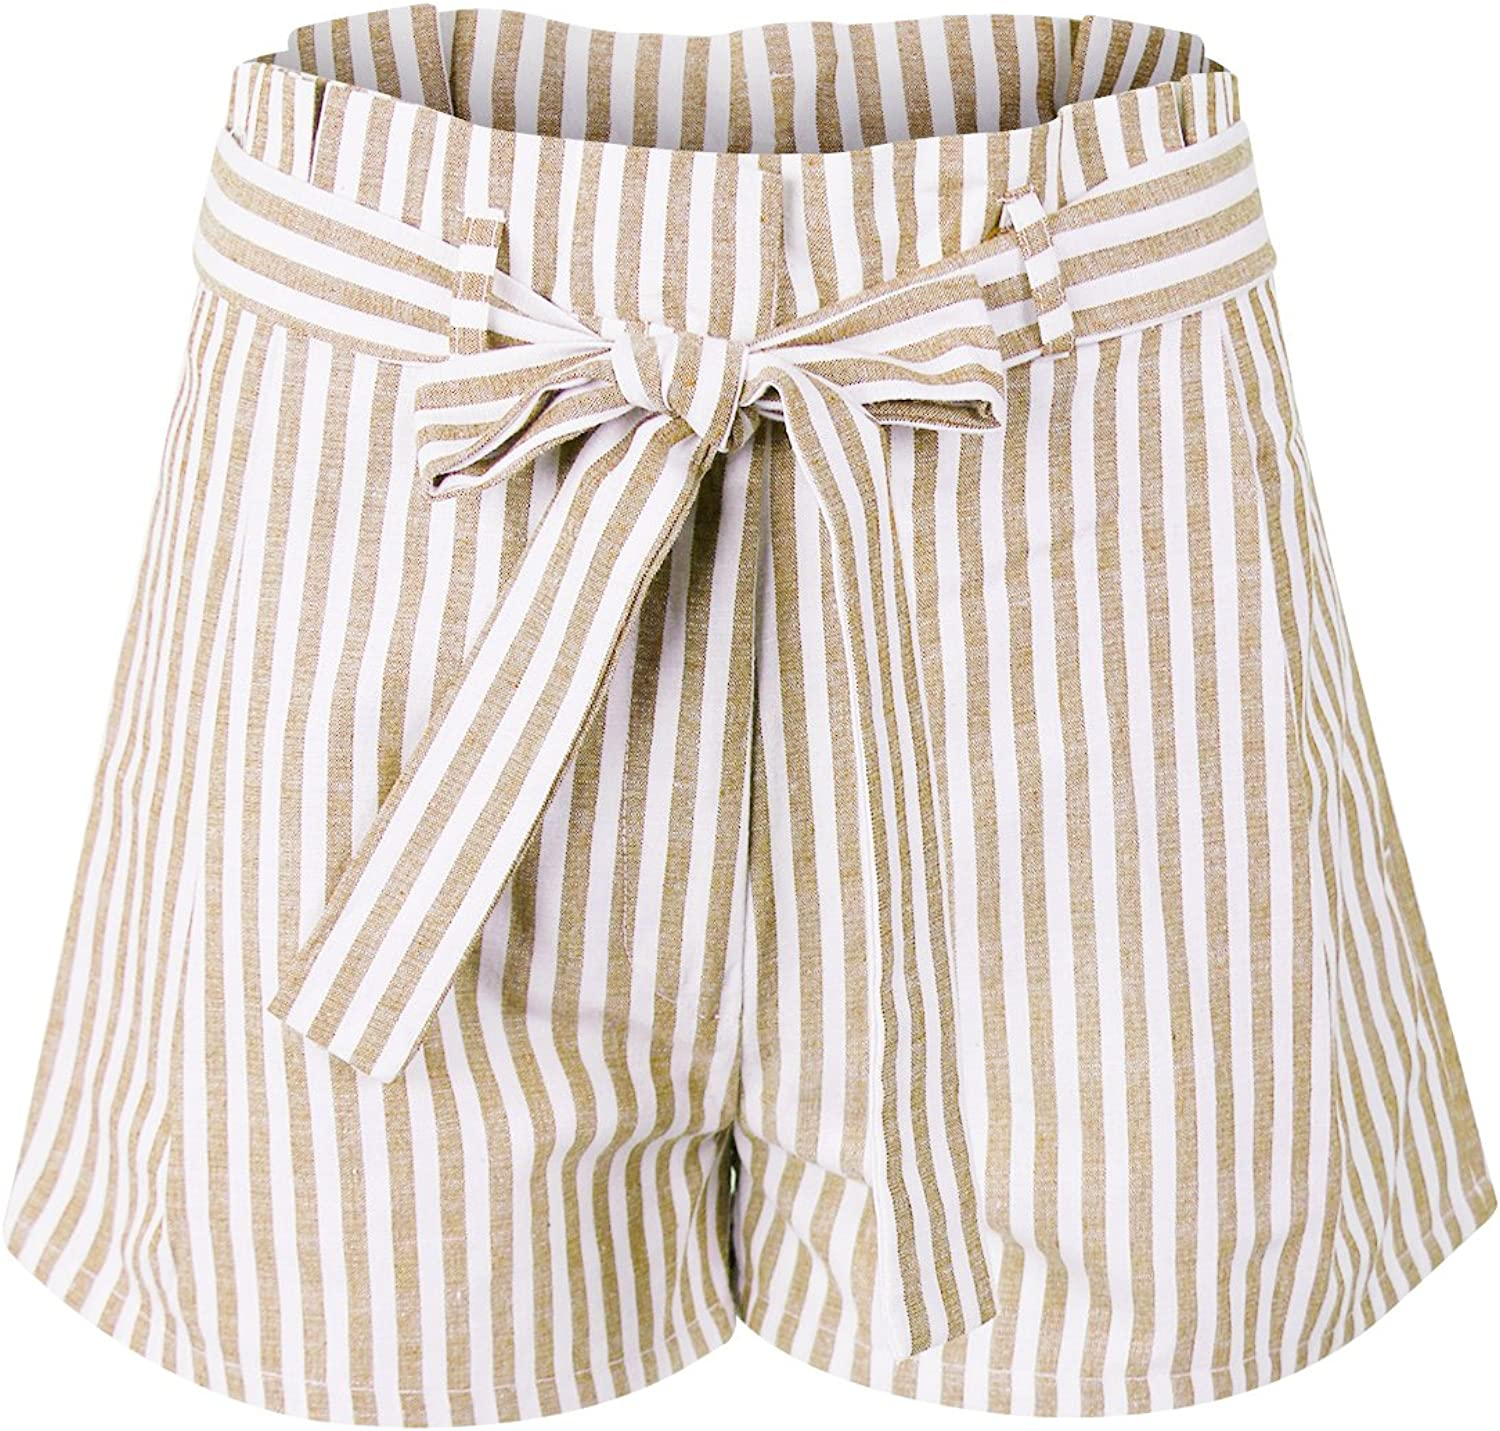 Makeitmint Women's Stripe Pleated Summer Pant Pocket Shorts w Tie Belt